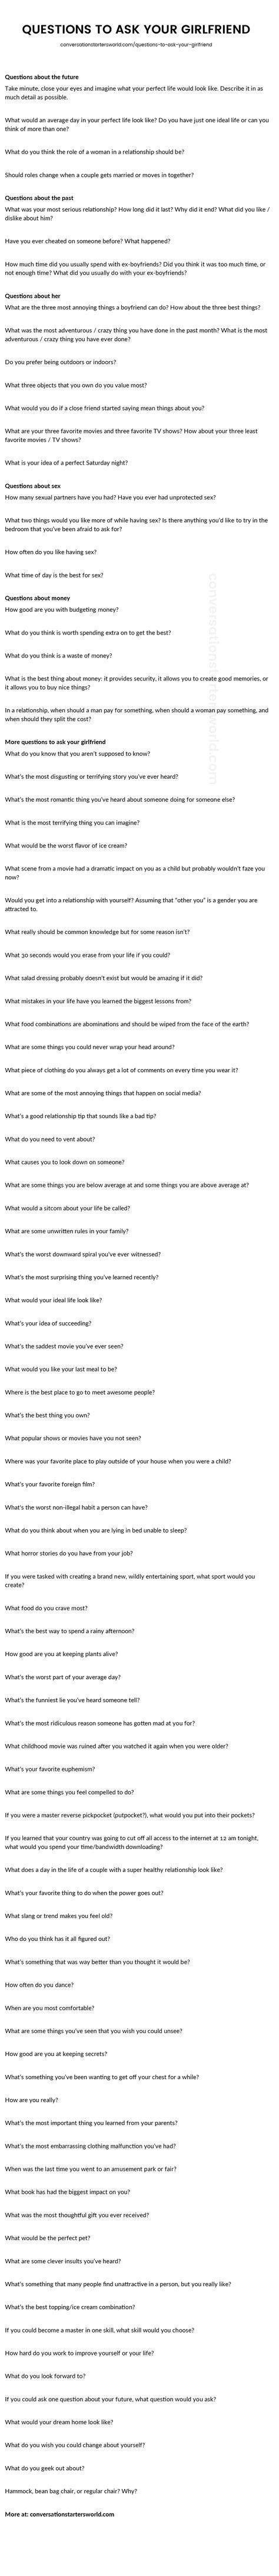 Great questions to ask your girlfriend